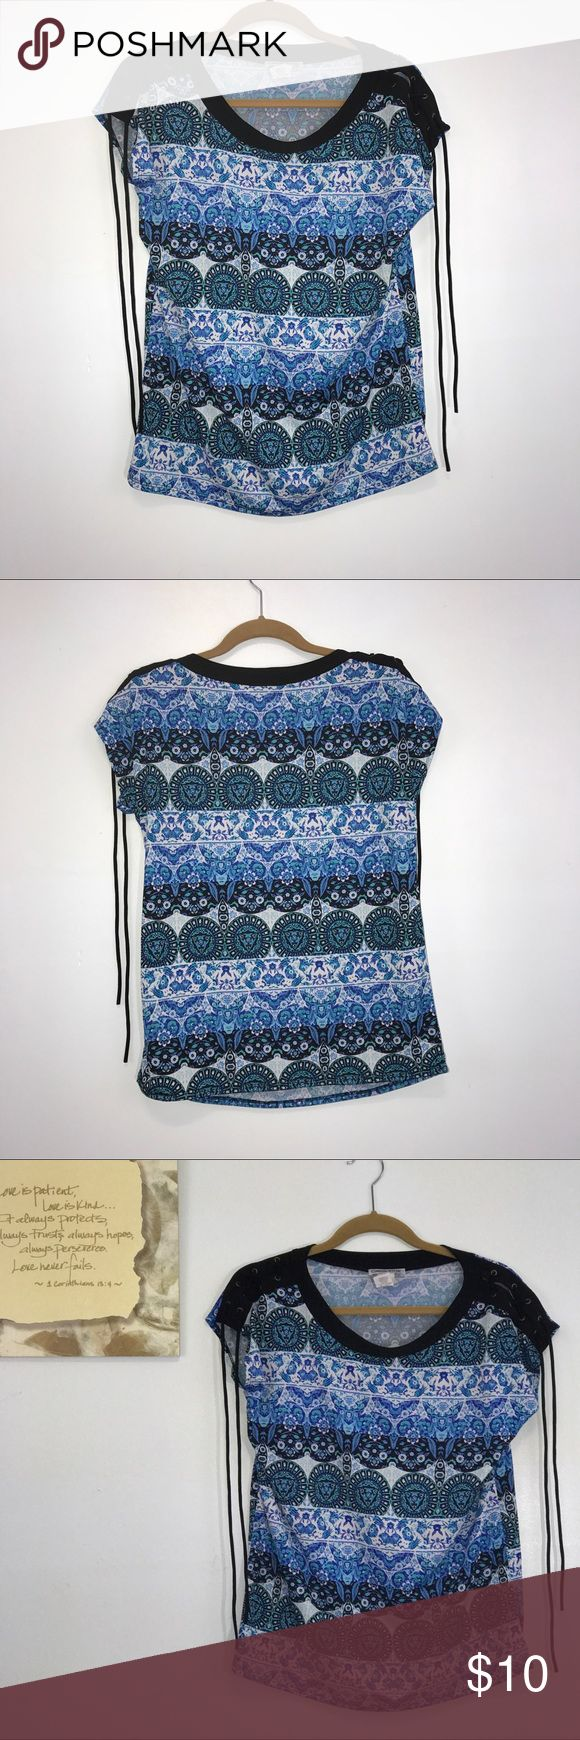 """Carol Rose Blue White Woman's Top Small Carol Rose blue and white woman's top. Has black neck trim and lace shoulder. Lying flat, approximate measurements are: bust, waist and hip 20""""; length 25.5"""". (H02-15) Tops"""